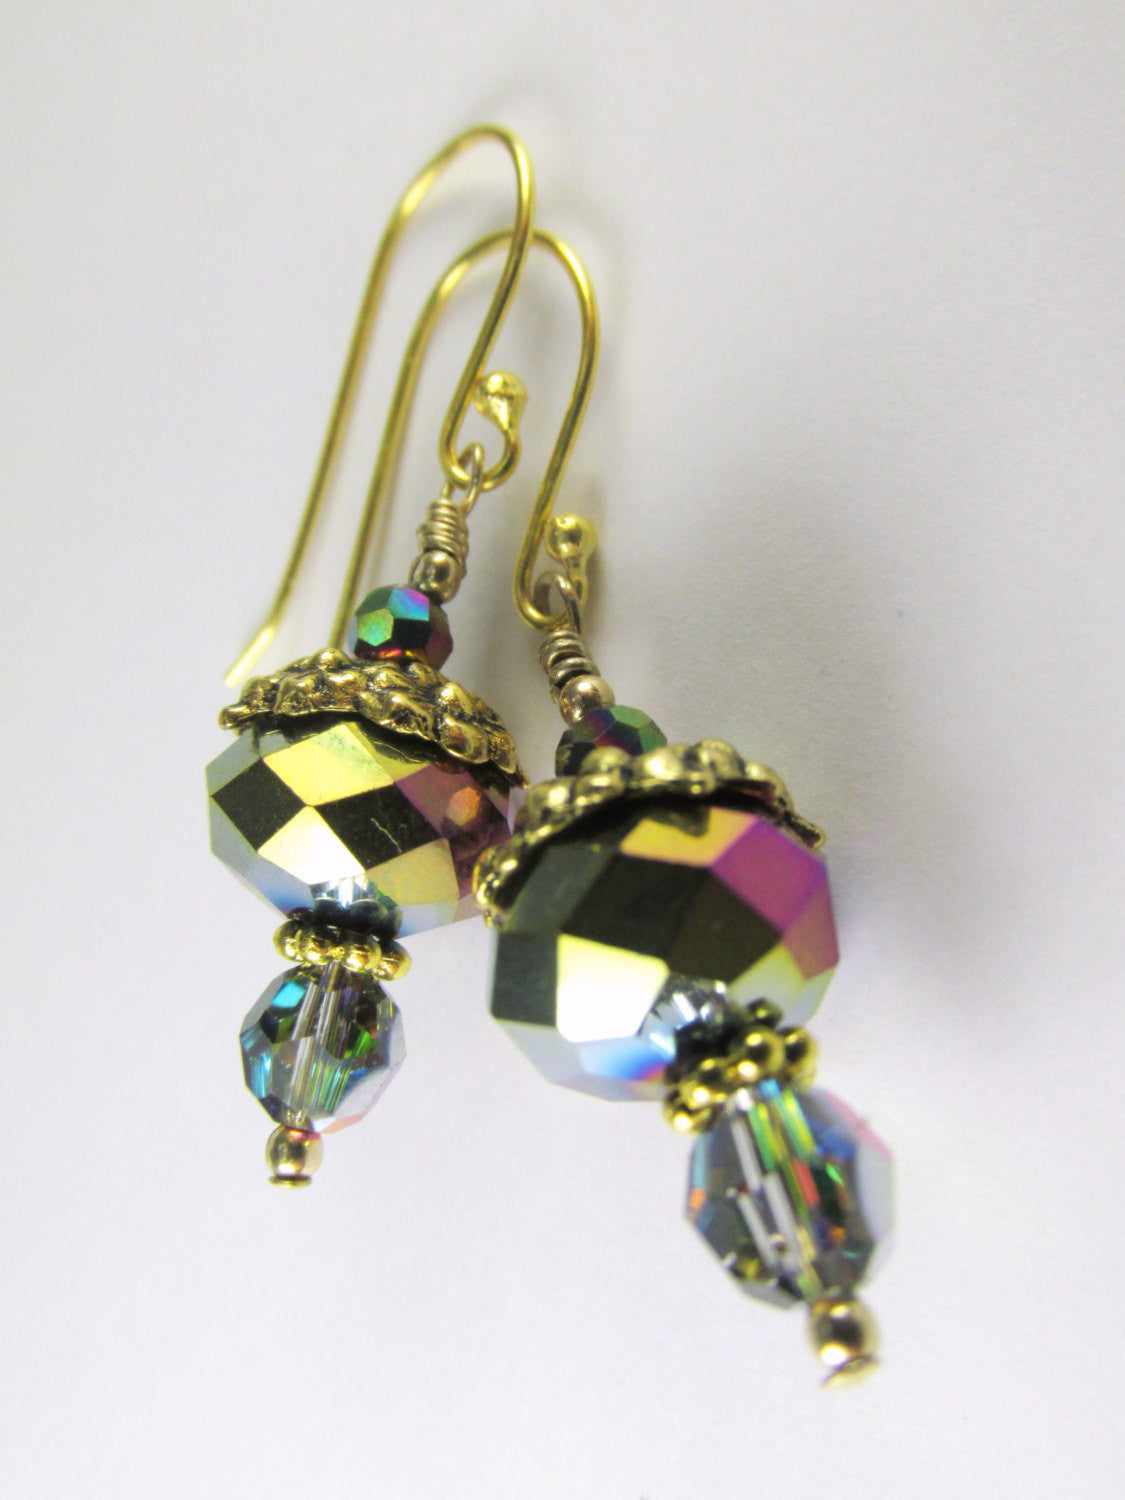 Short Vitrail Medium Earrings with Gold Floral beadcaps on 22k gold Bali earrring wires - Green, Purple, Pink, Blue - Odyssey Creations